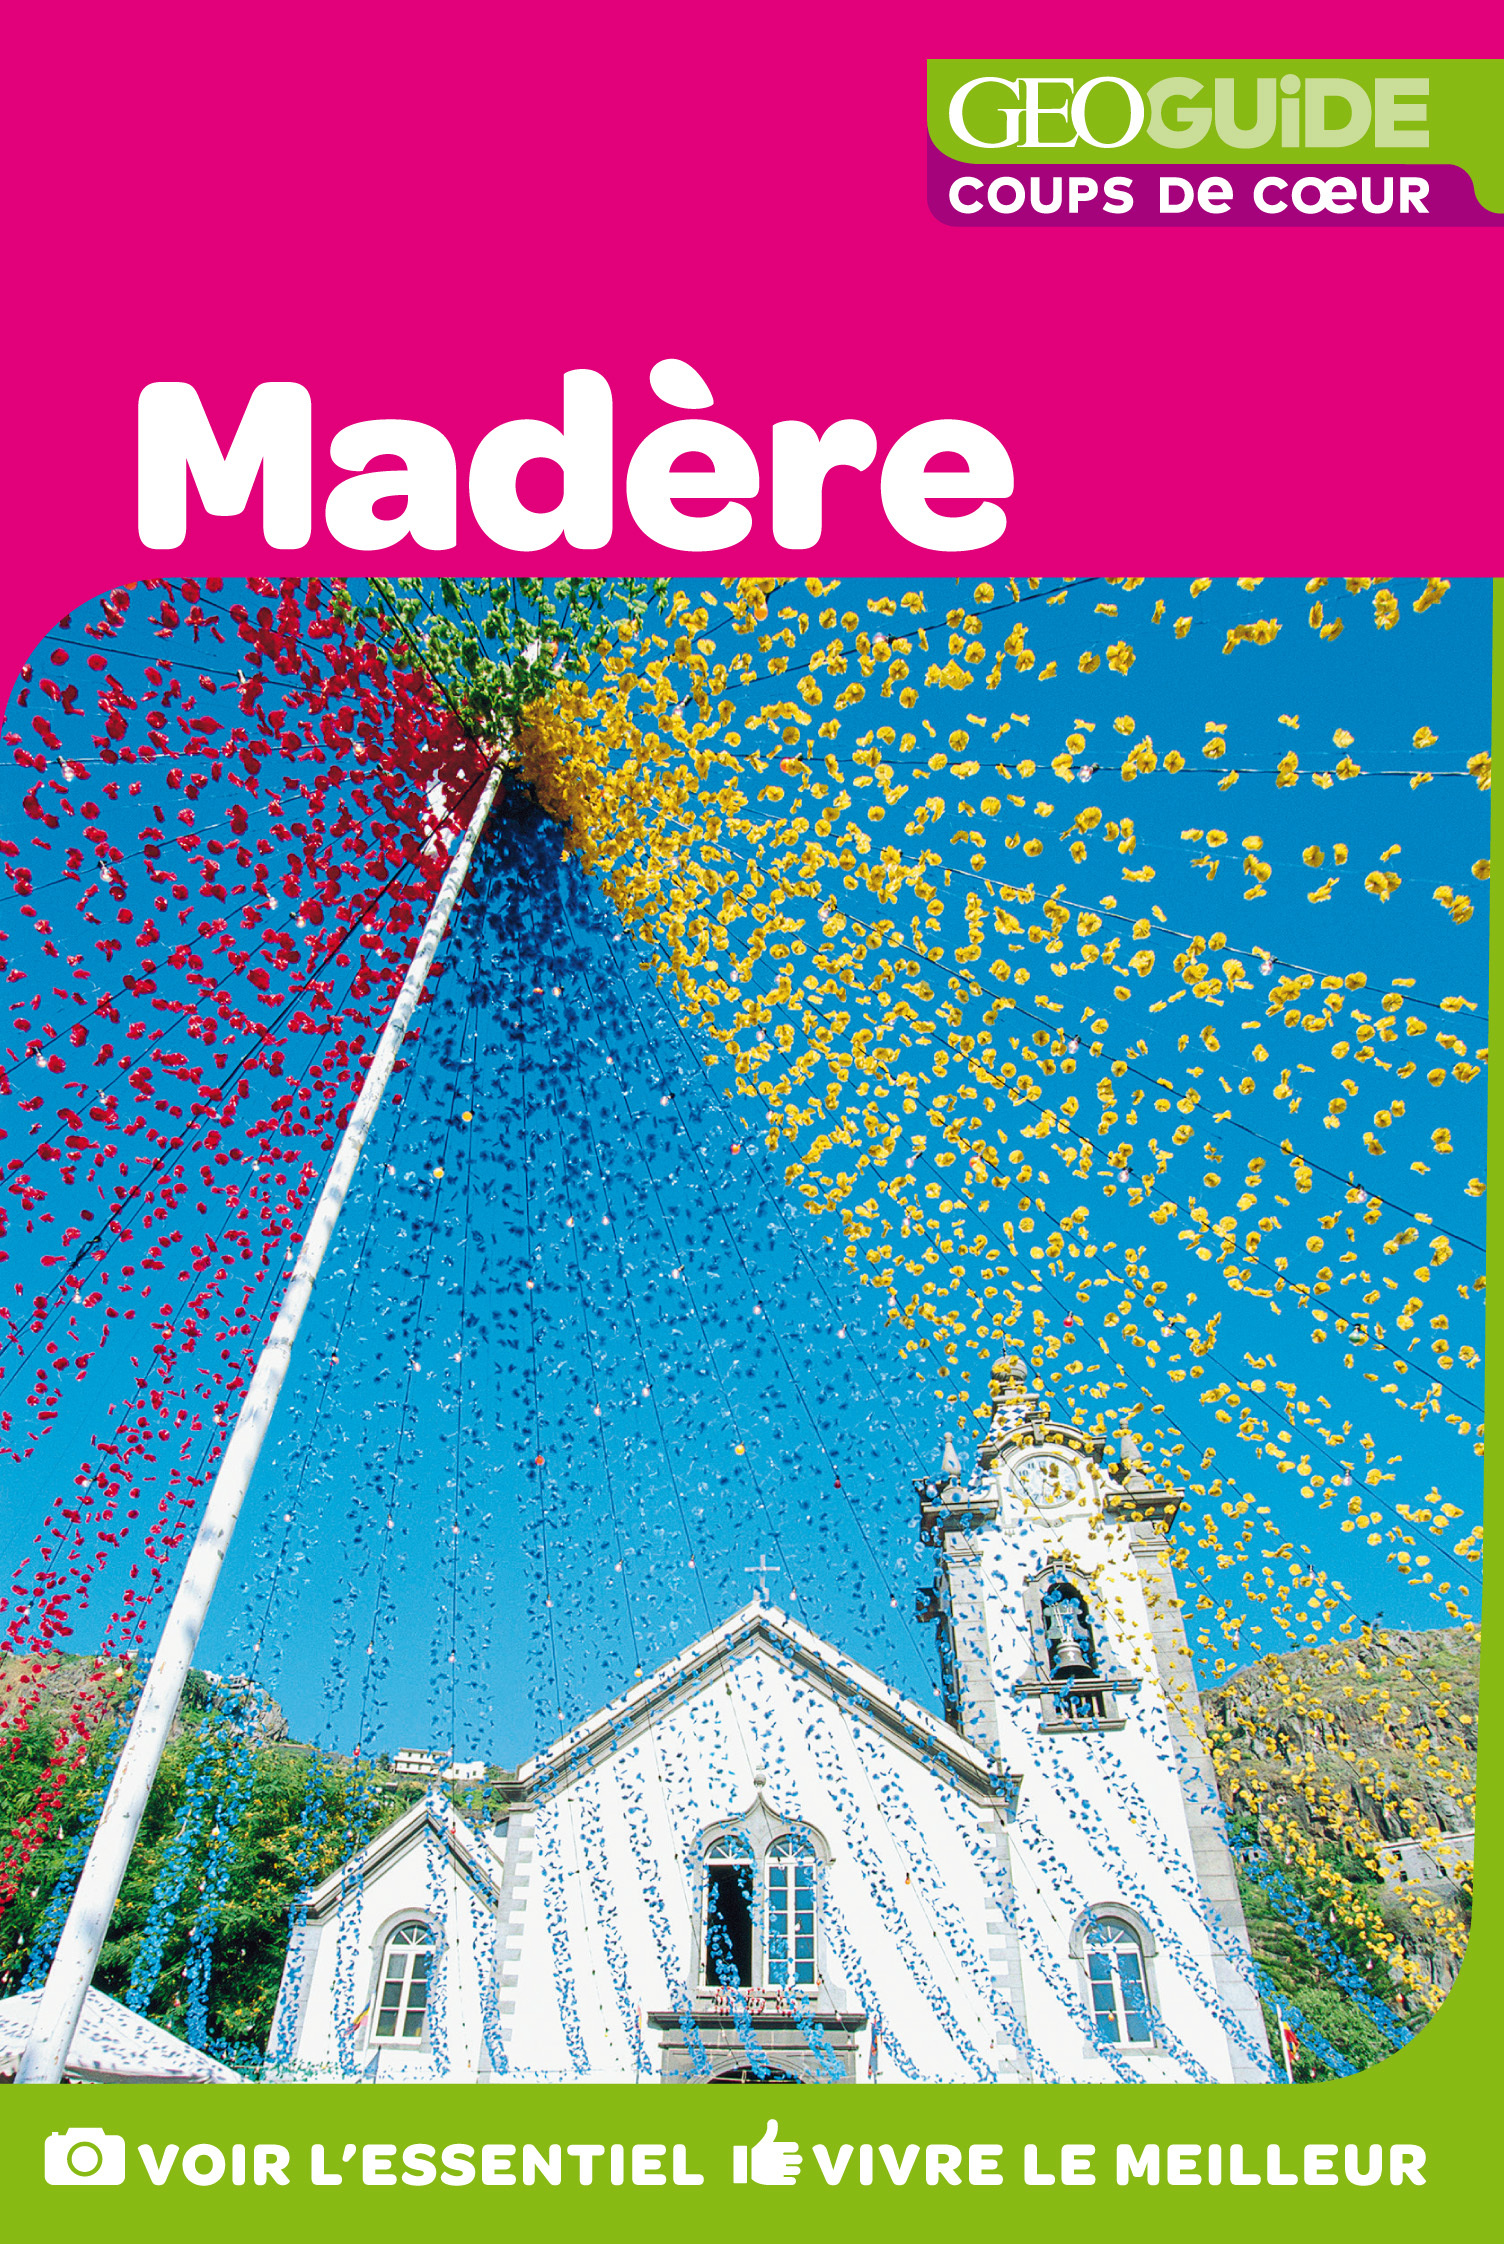 MADERE